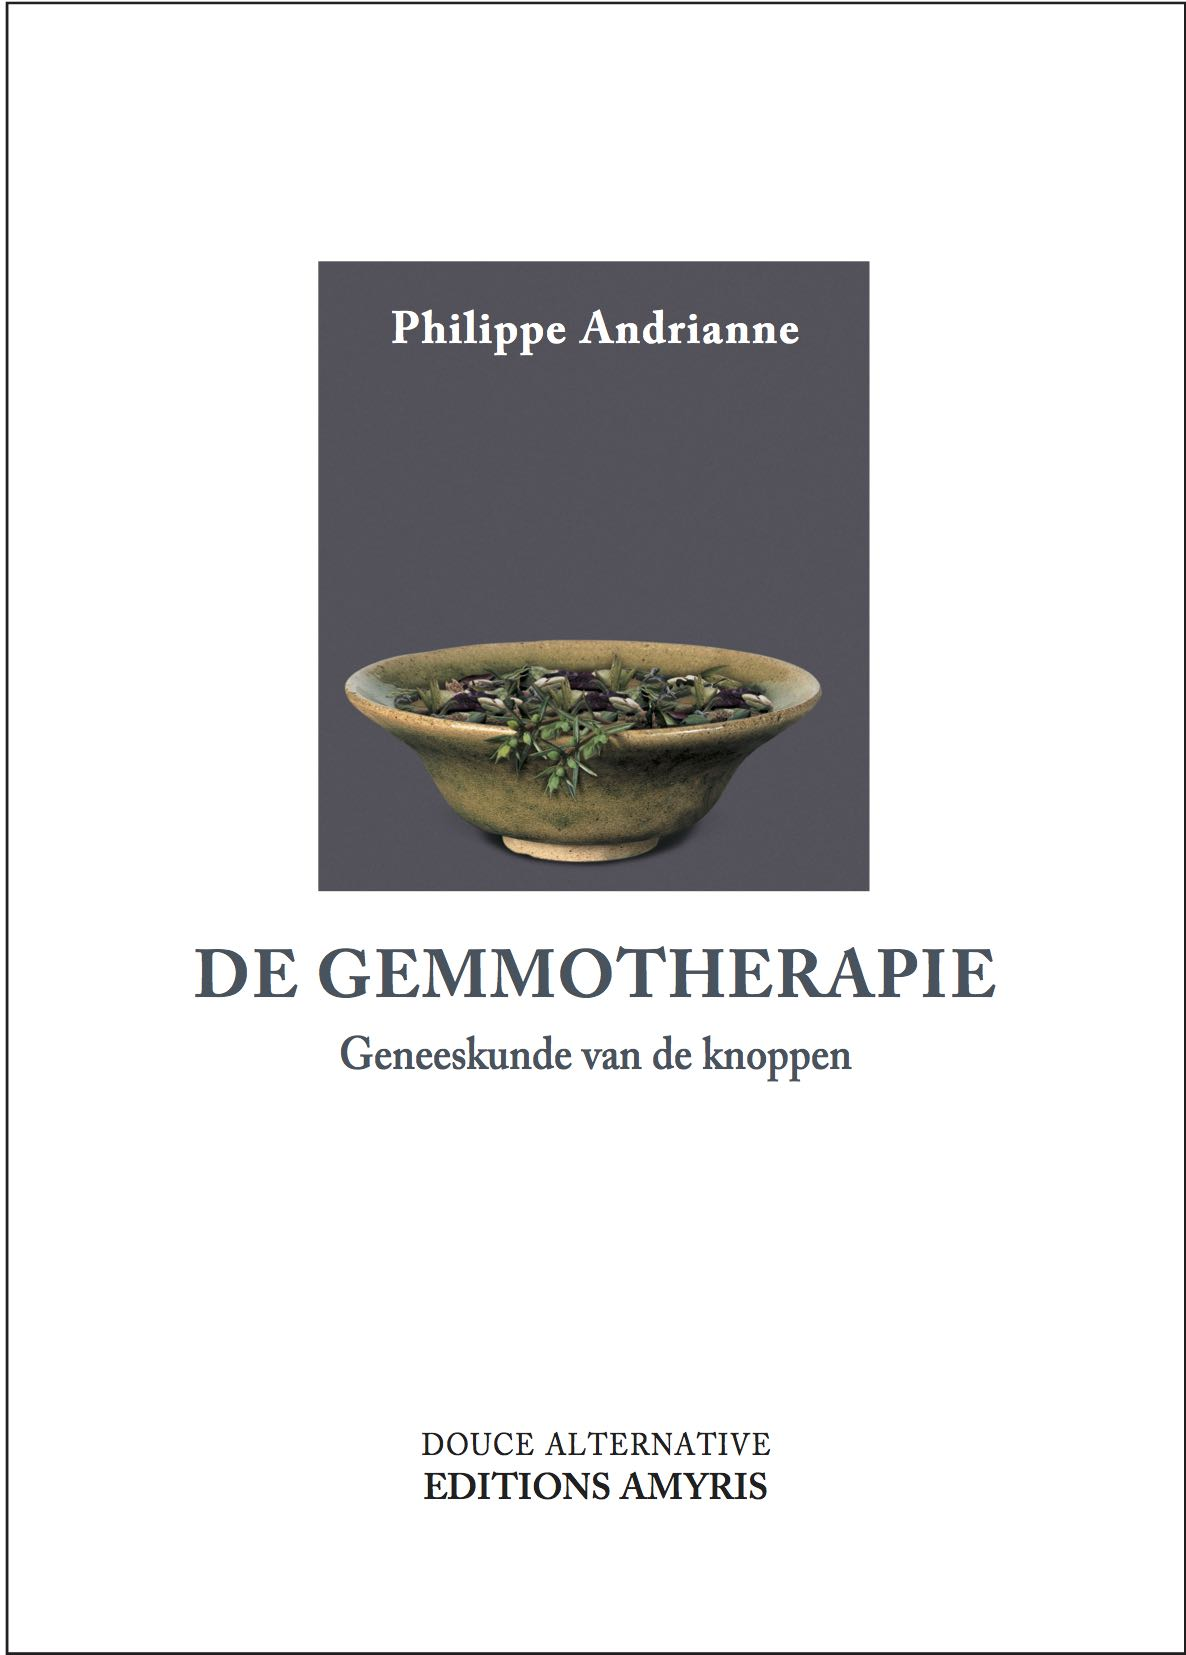 De gemmotherapie NL New